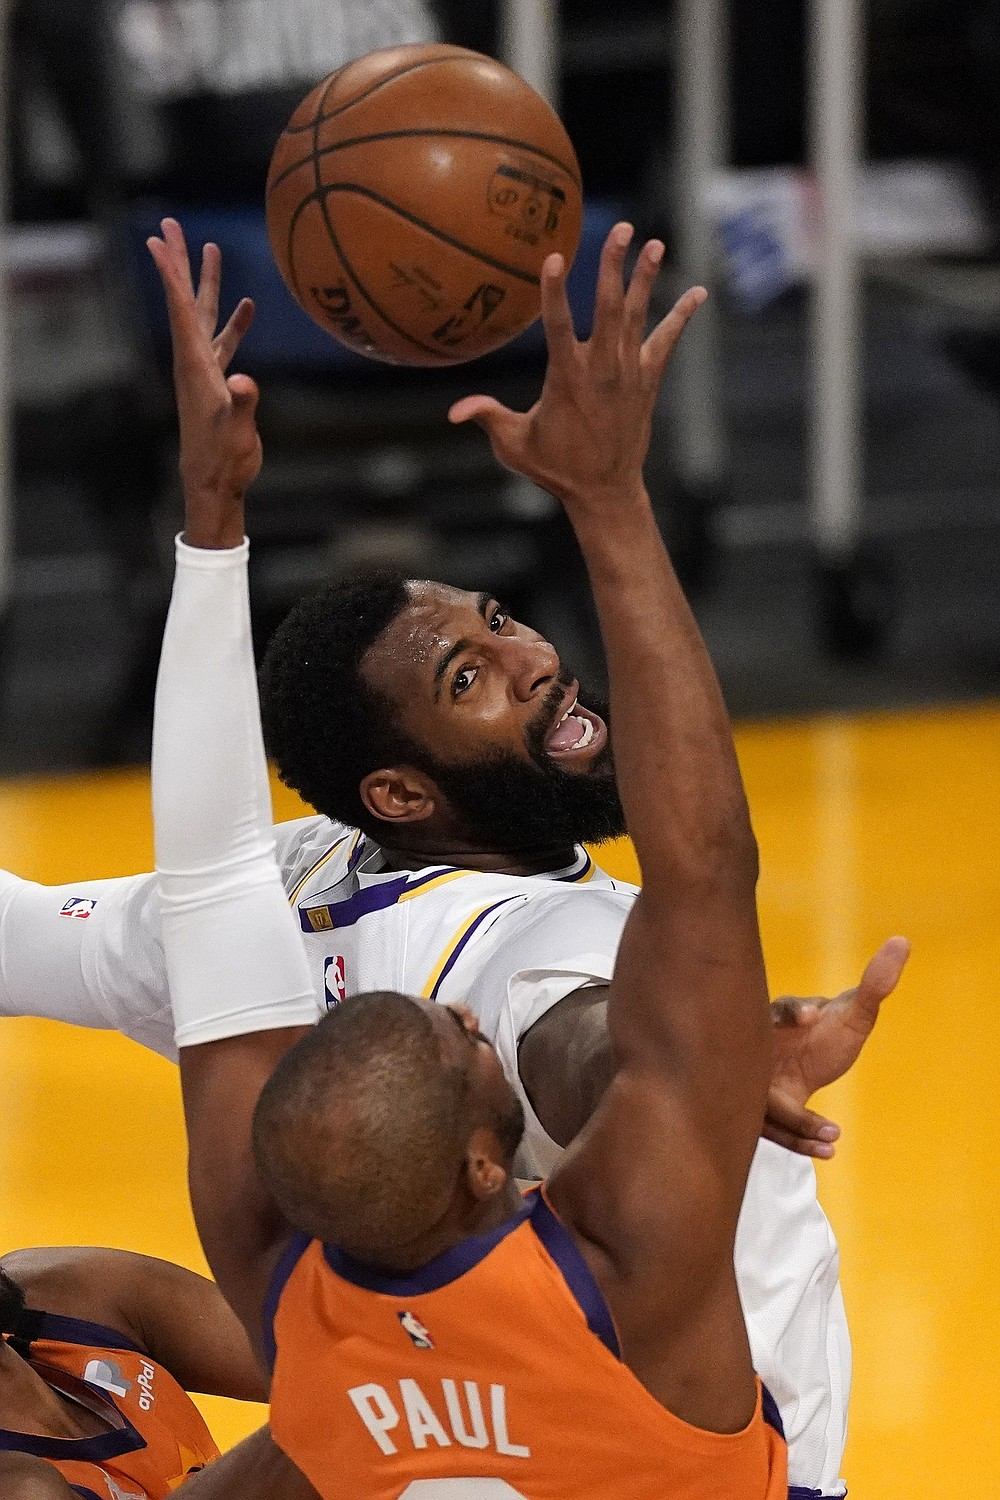 Los Angeles Lakers center Andre Drummond, top, and Phoenix Suns guard Chris Paul go after a rebound during the first half in Game 4 of an NBA basketball first-round playoff series Sunday, May 30, 2021, in Los Angeles. (AP Photo/Mark J. Terrill)